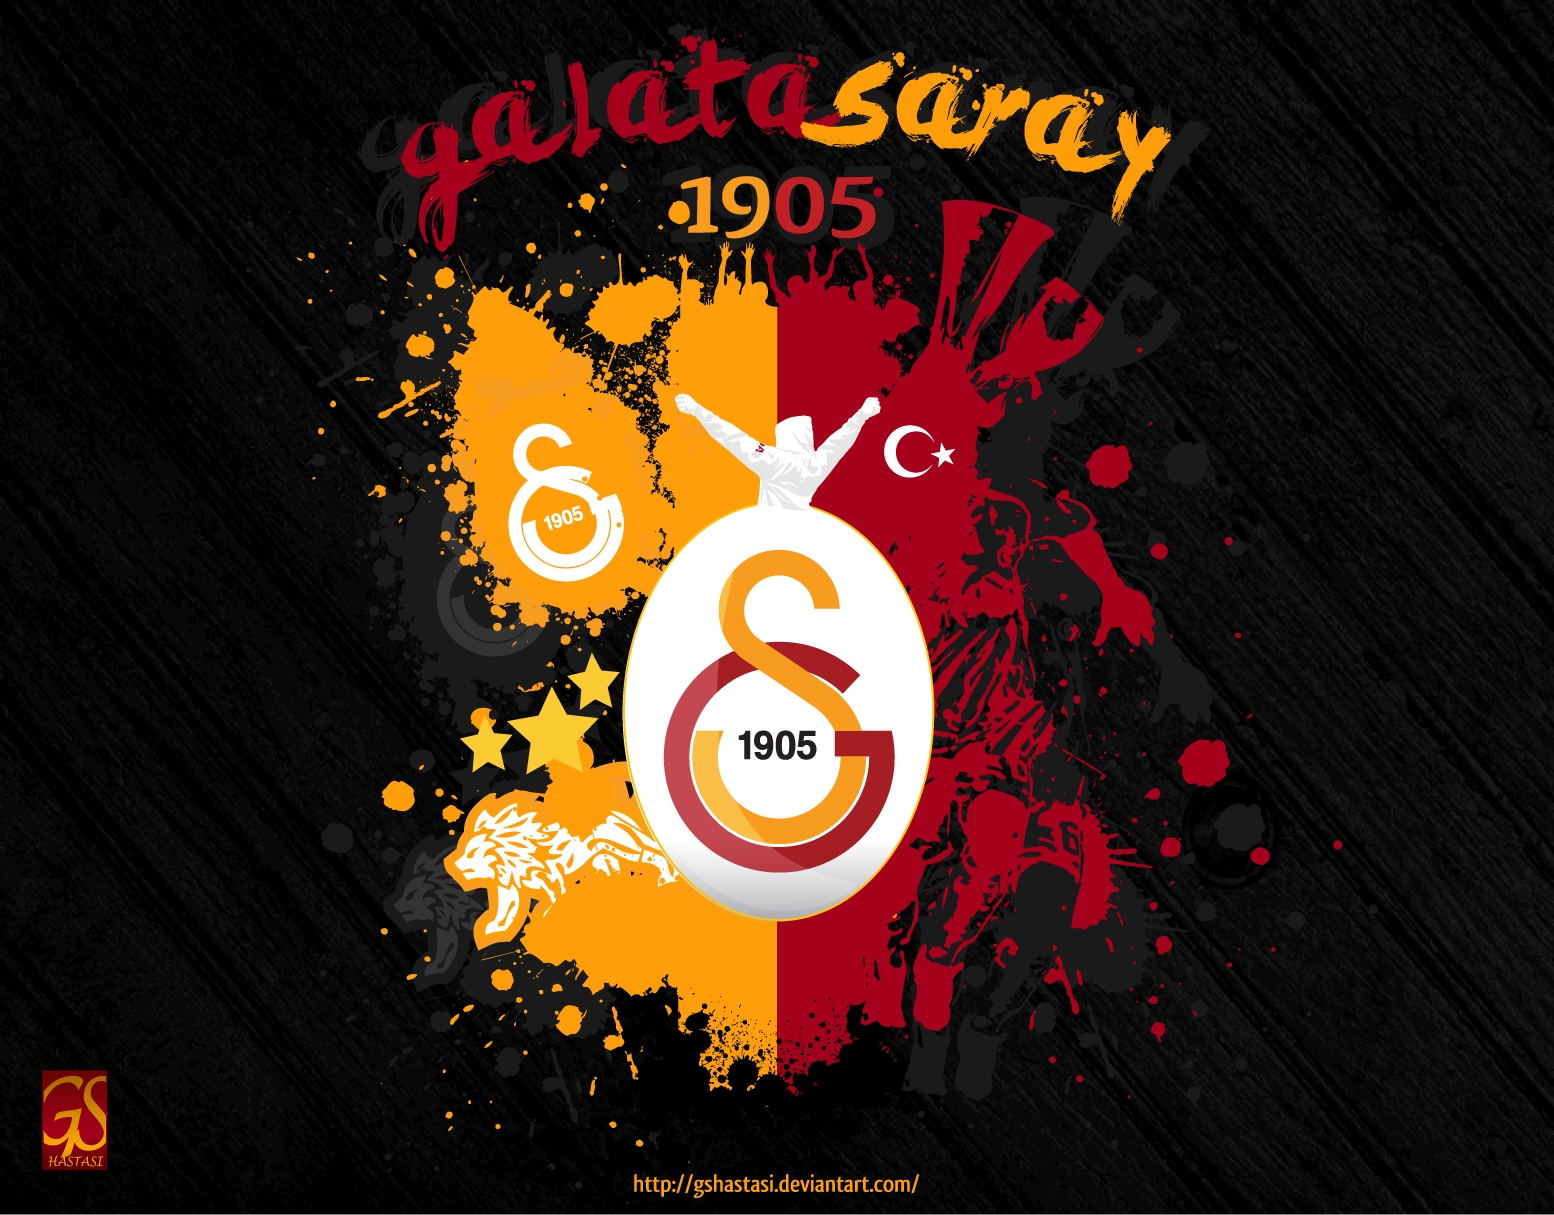 Galata Saray: the best team in Turkey (according to most of the Turks on the Black Sea!)